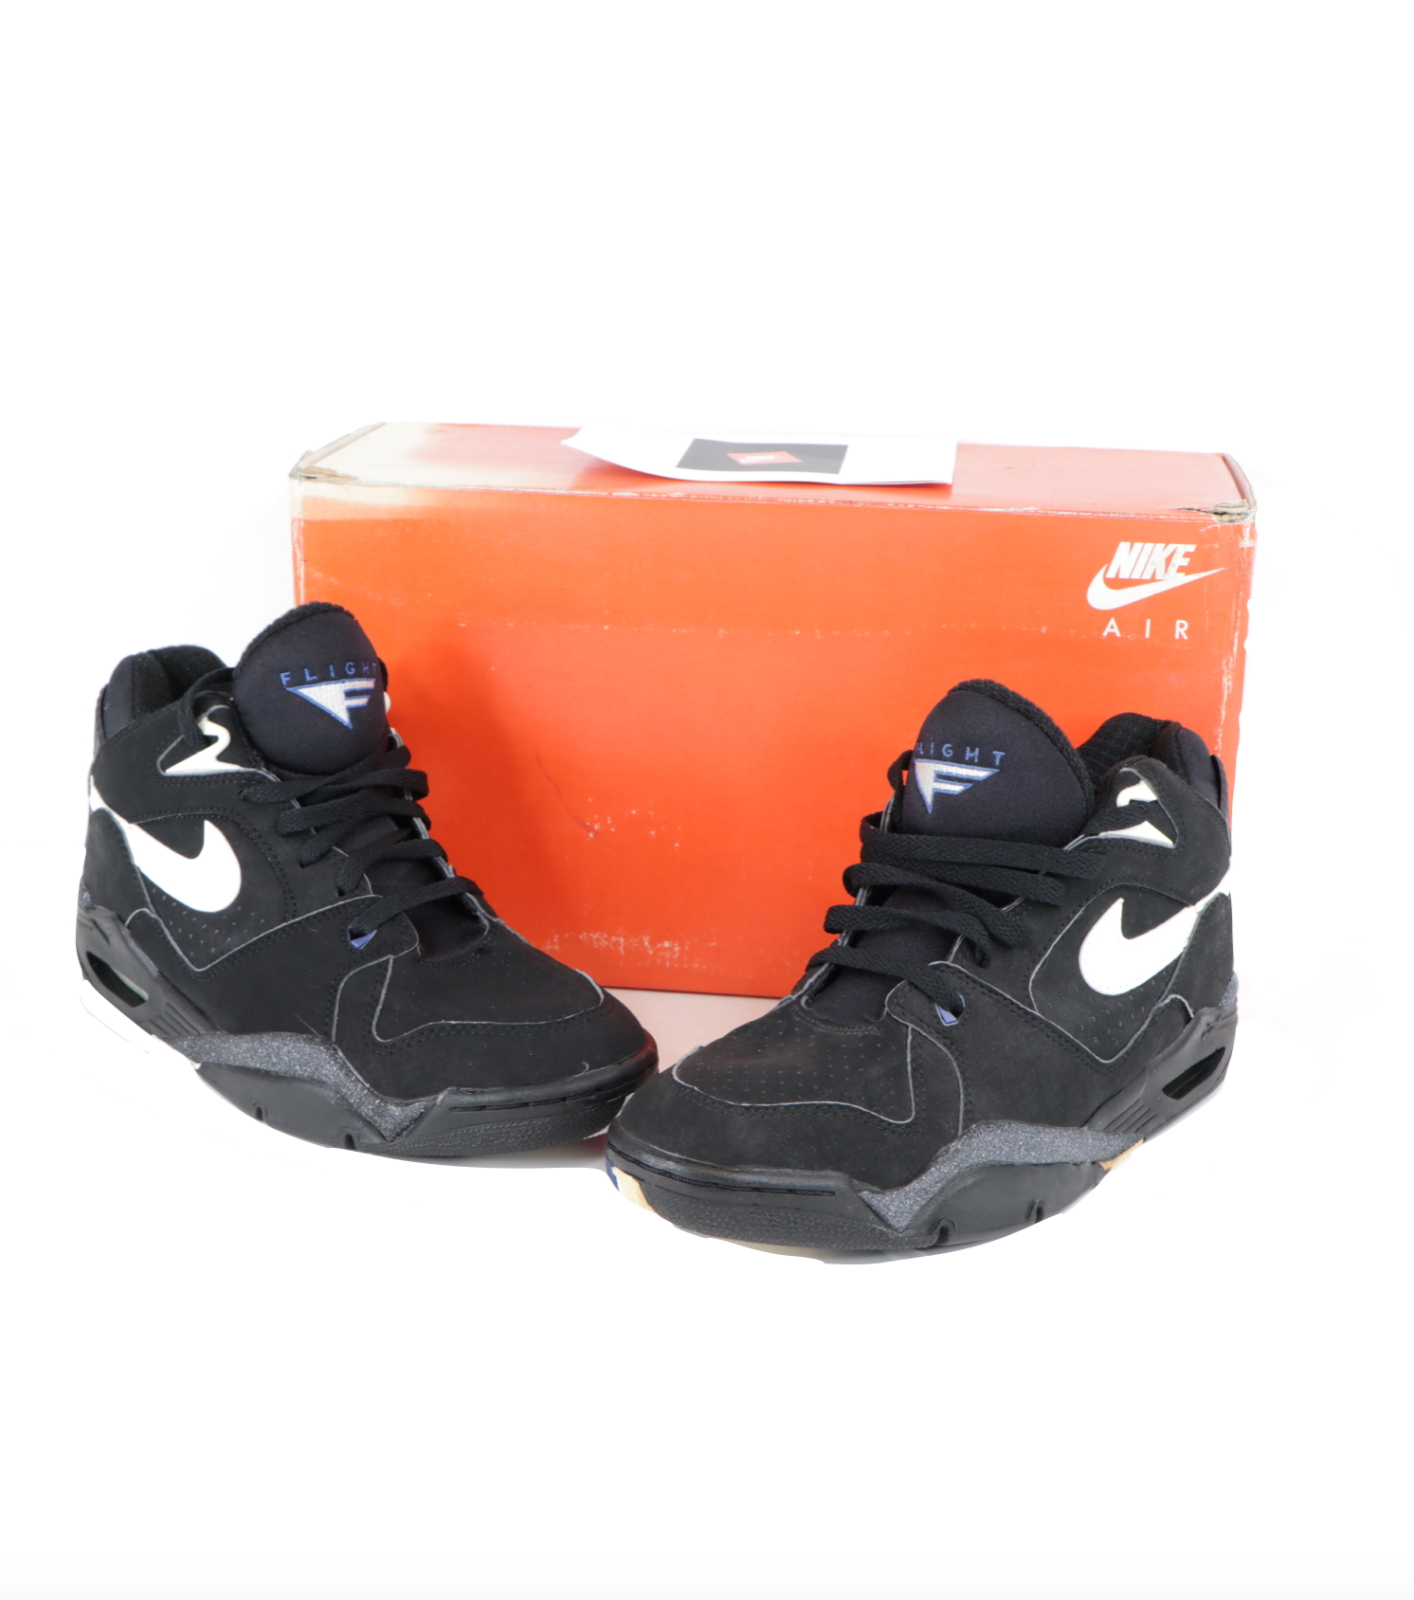 NOS Vintage 90s Nike Air Bound Force Basketball Sneakers Sho